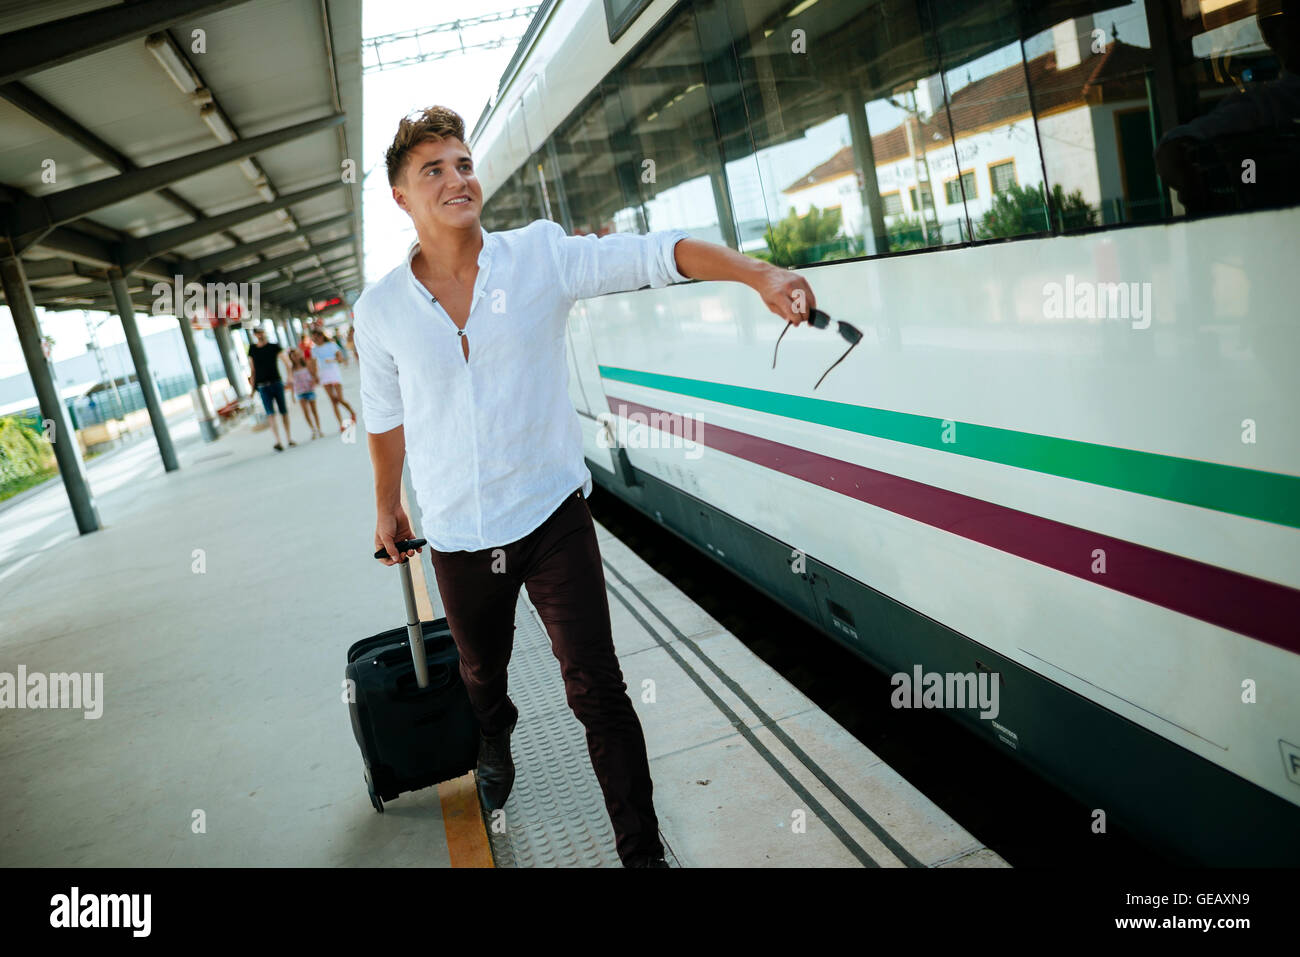 Young man at station platform running to get on the train - Stock Image